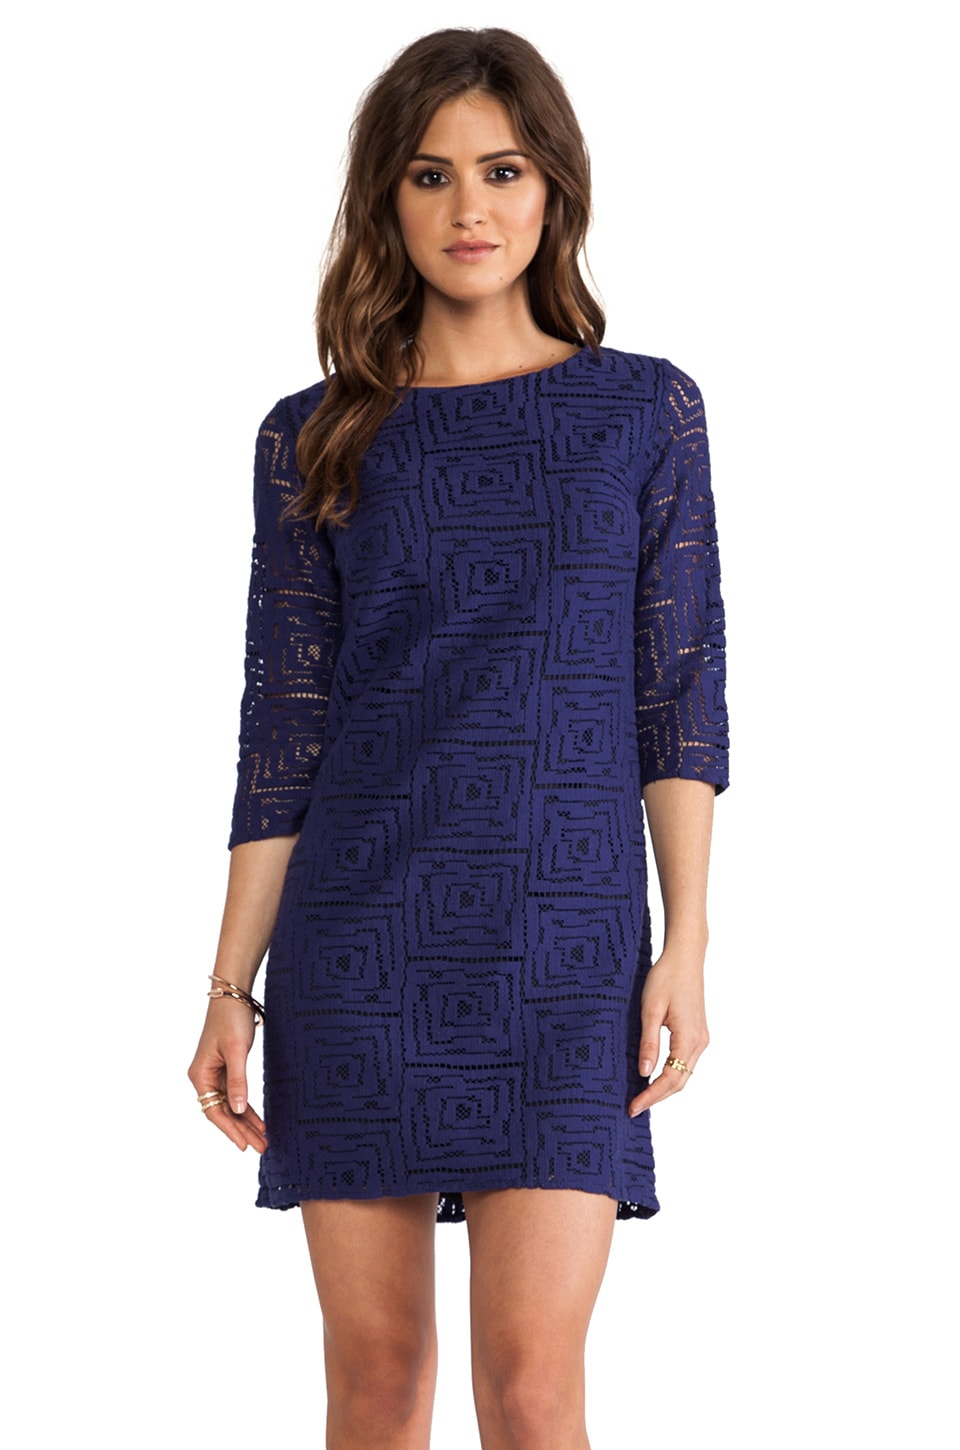 Shoshanna Geo Lace Constance Dress in Navy/Black